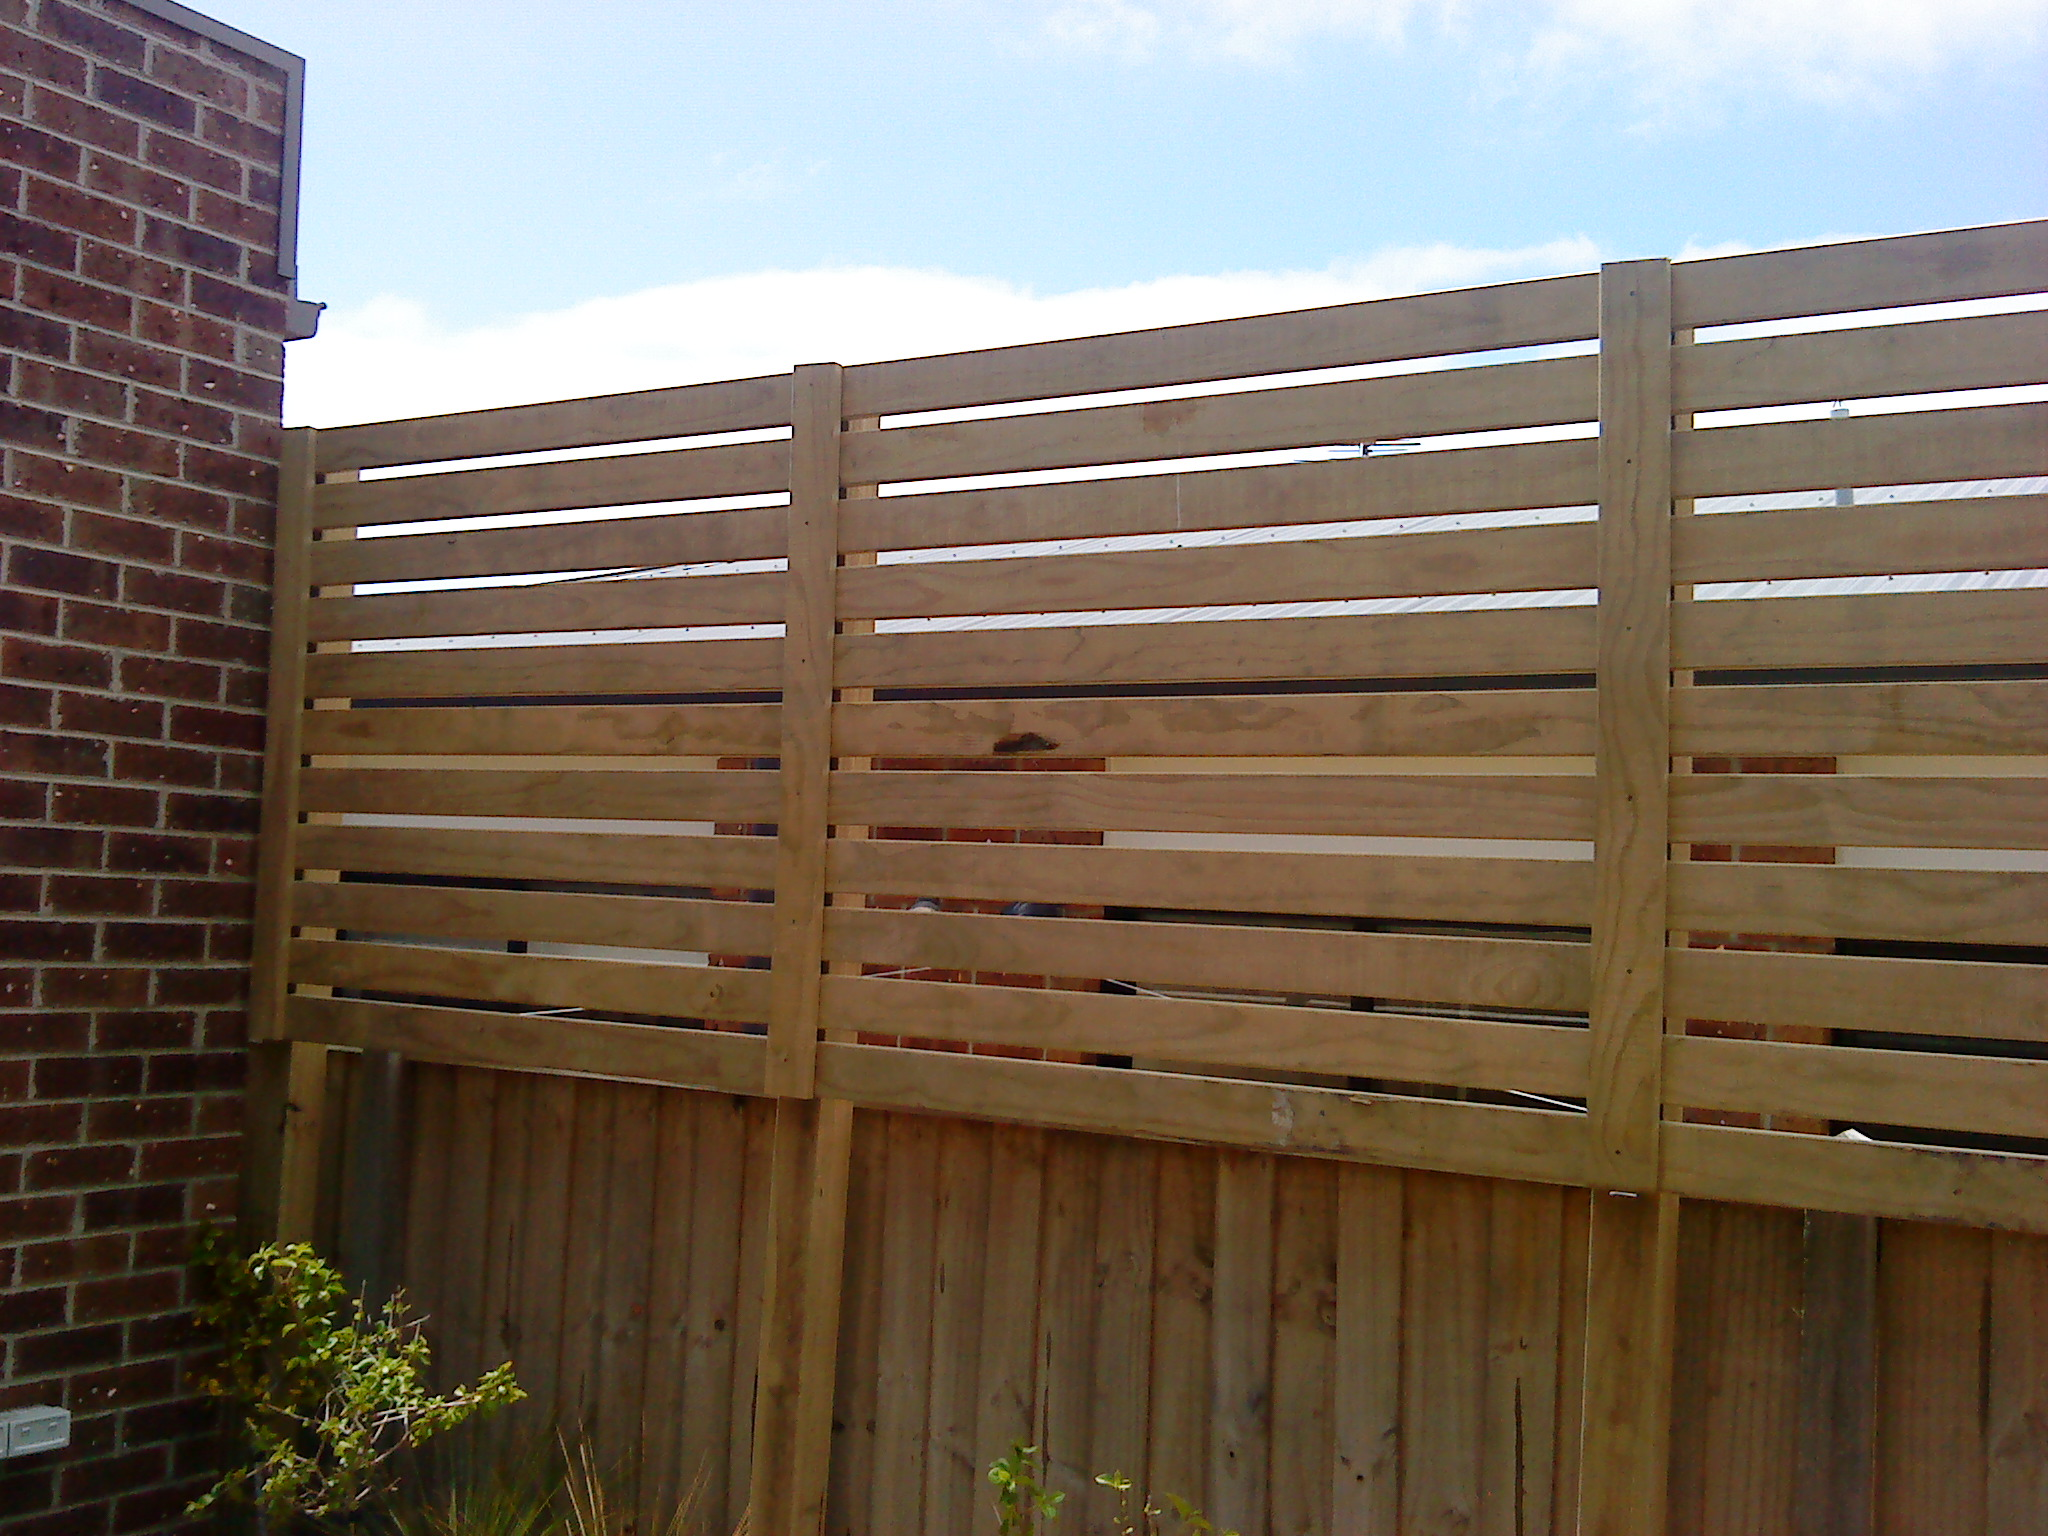 Popular Decorative Privacy Screen With Window Screens Privacy Screens Garden Screens Backyard Screens also Construction Tarps in addition Filling The Advertising Void Crowd Control Barrier Covers Signs And Banners For Events besides Greenscreen moreover Eastern Red Cedar Taylor. on fence shade screens